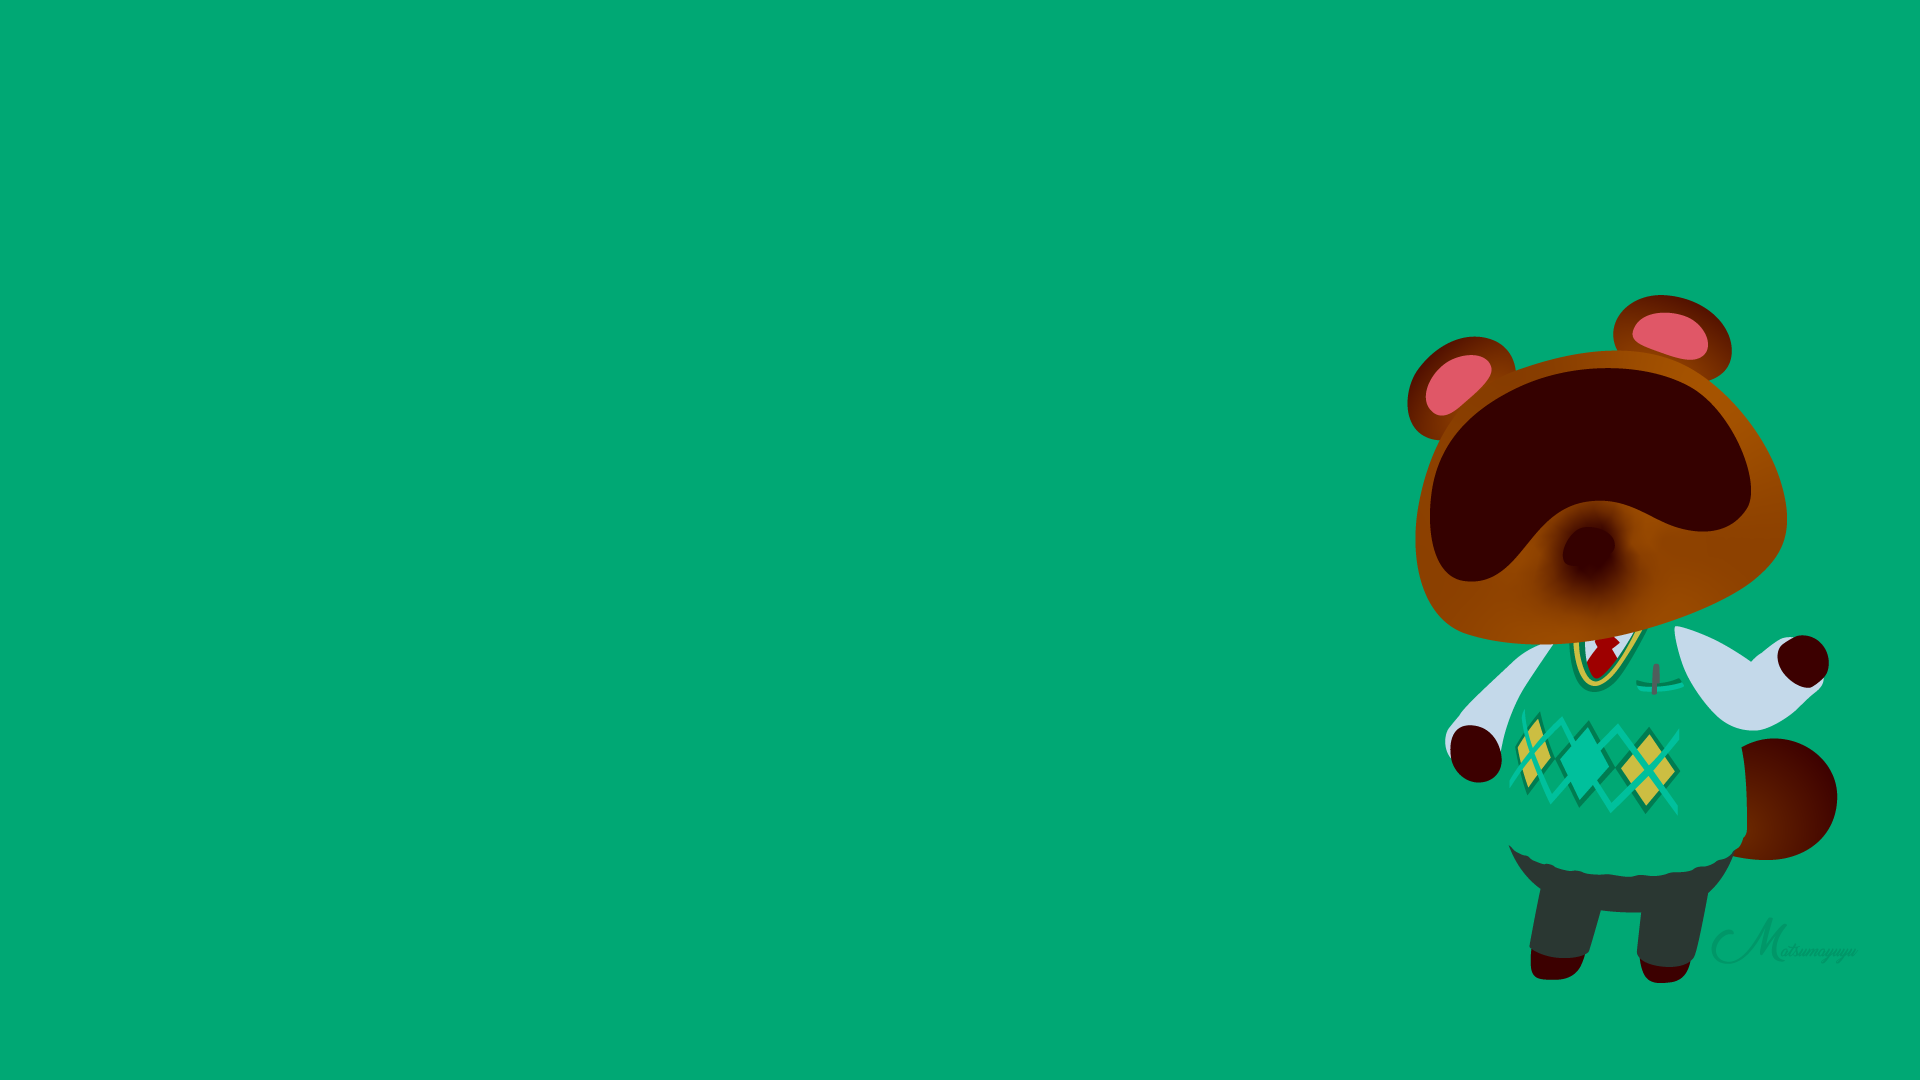 Animal Crossing Hd Wallpaper Posted By Ethan Cunningham